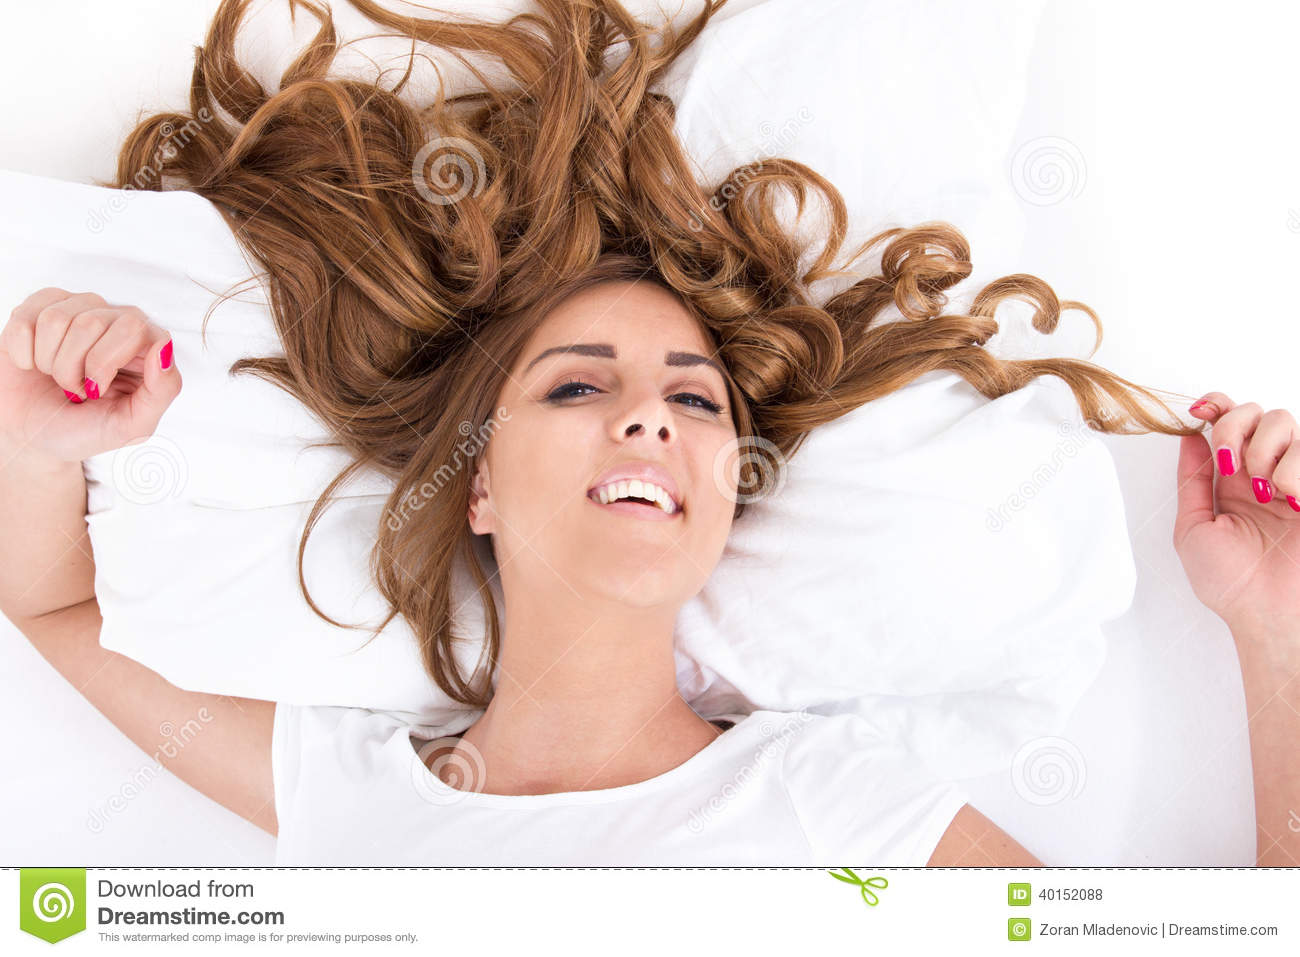 Woman with eyes open and hair spread on bed in bright image